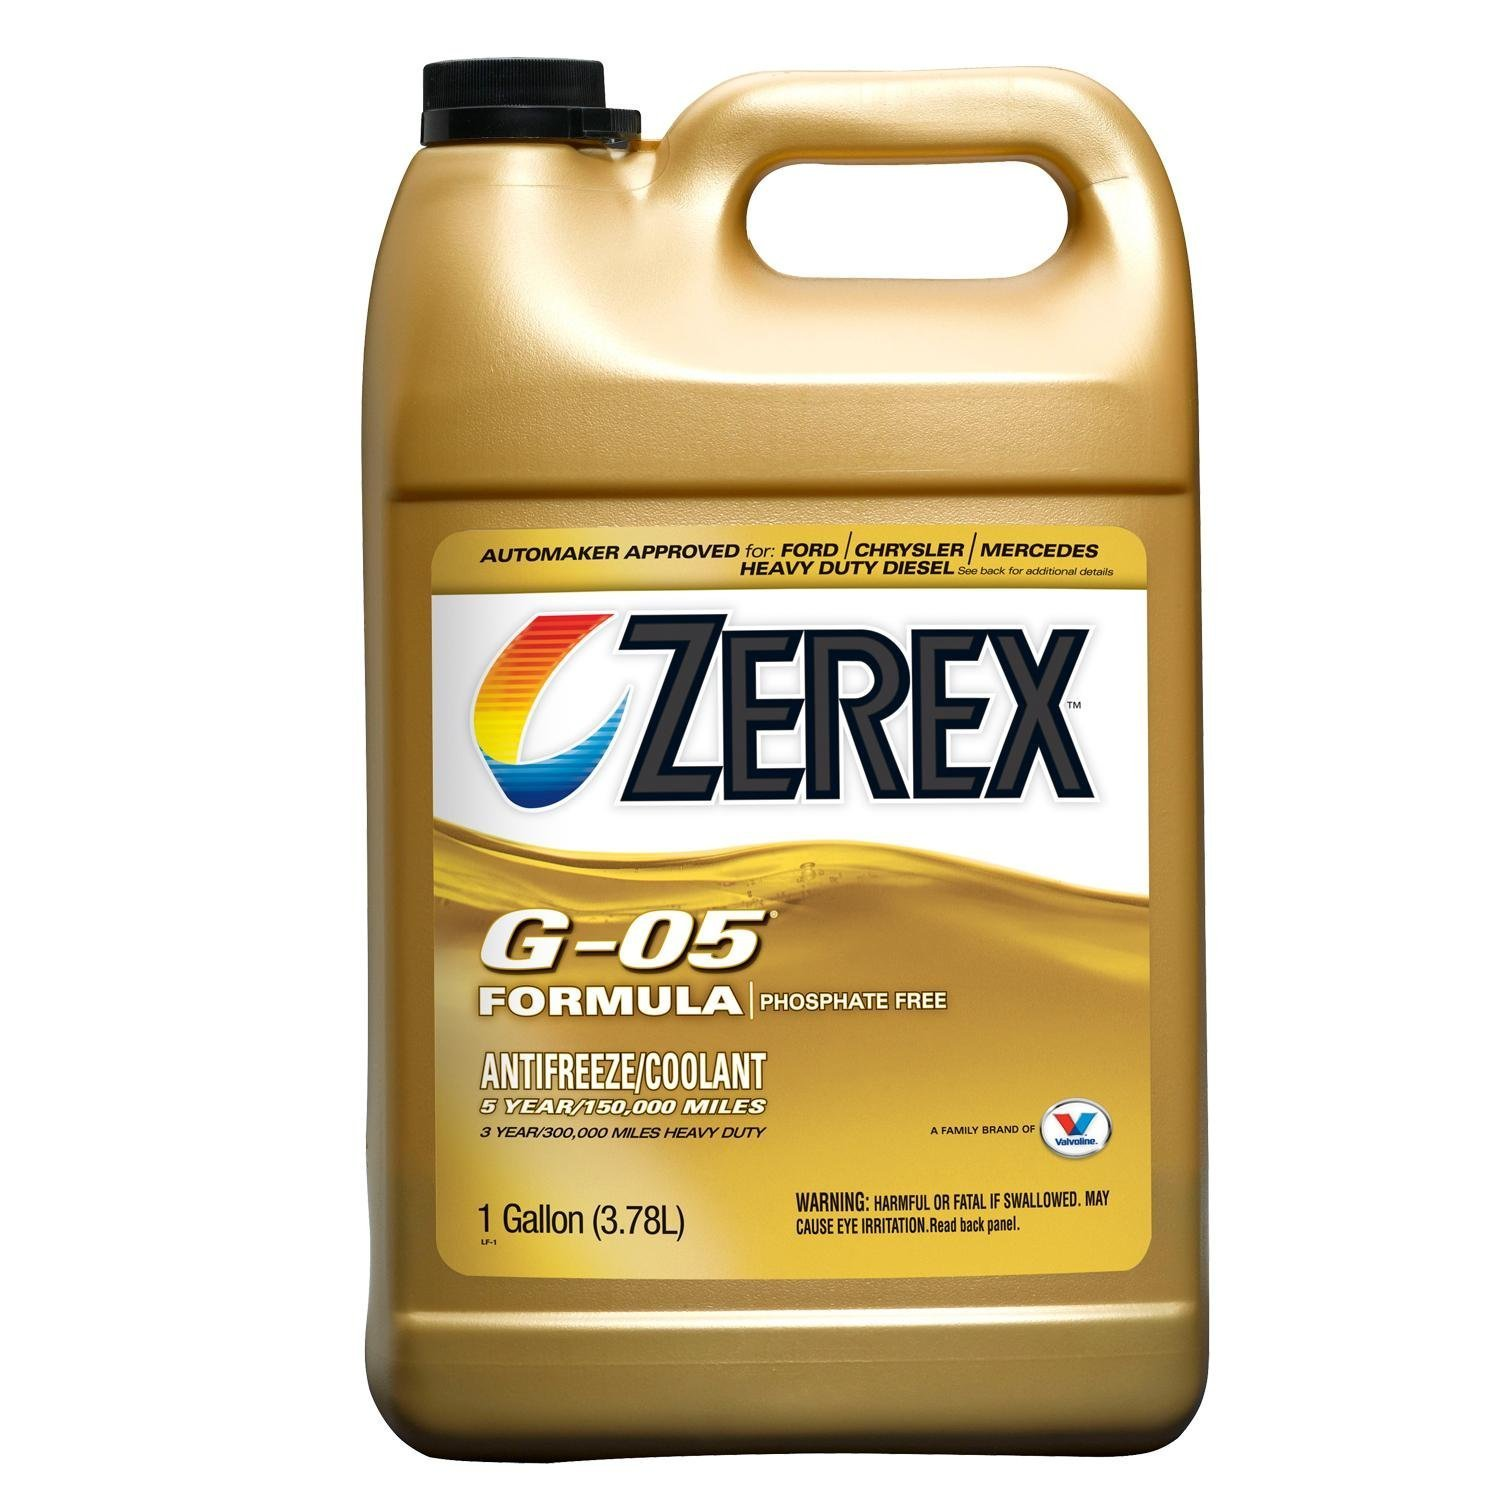 Zerex G-05 Antifreeze/Coolant, Concentrated - 1gal (4) by Zerex